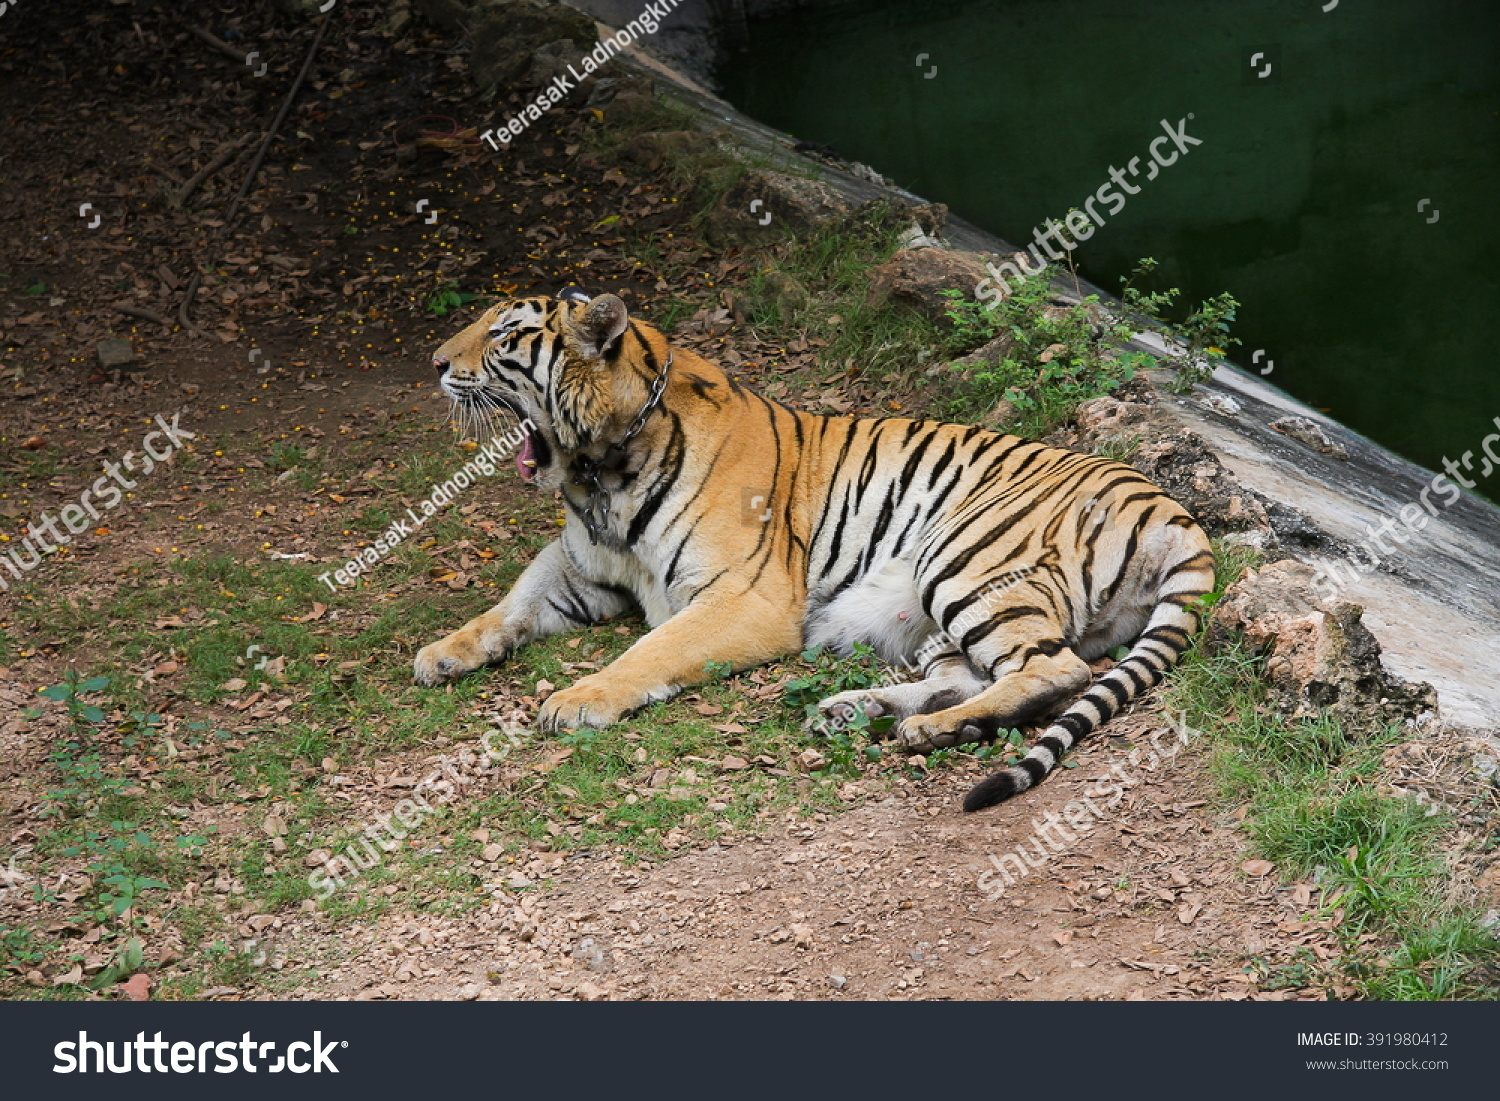 tiger relax near river stock photo 391980412 - shutterstock